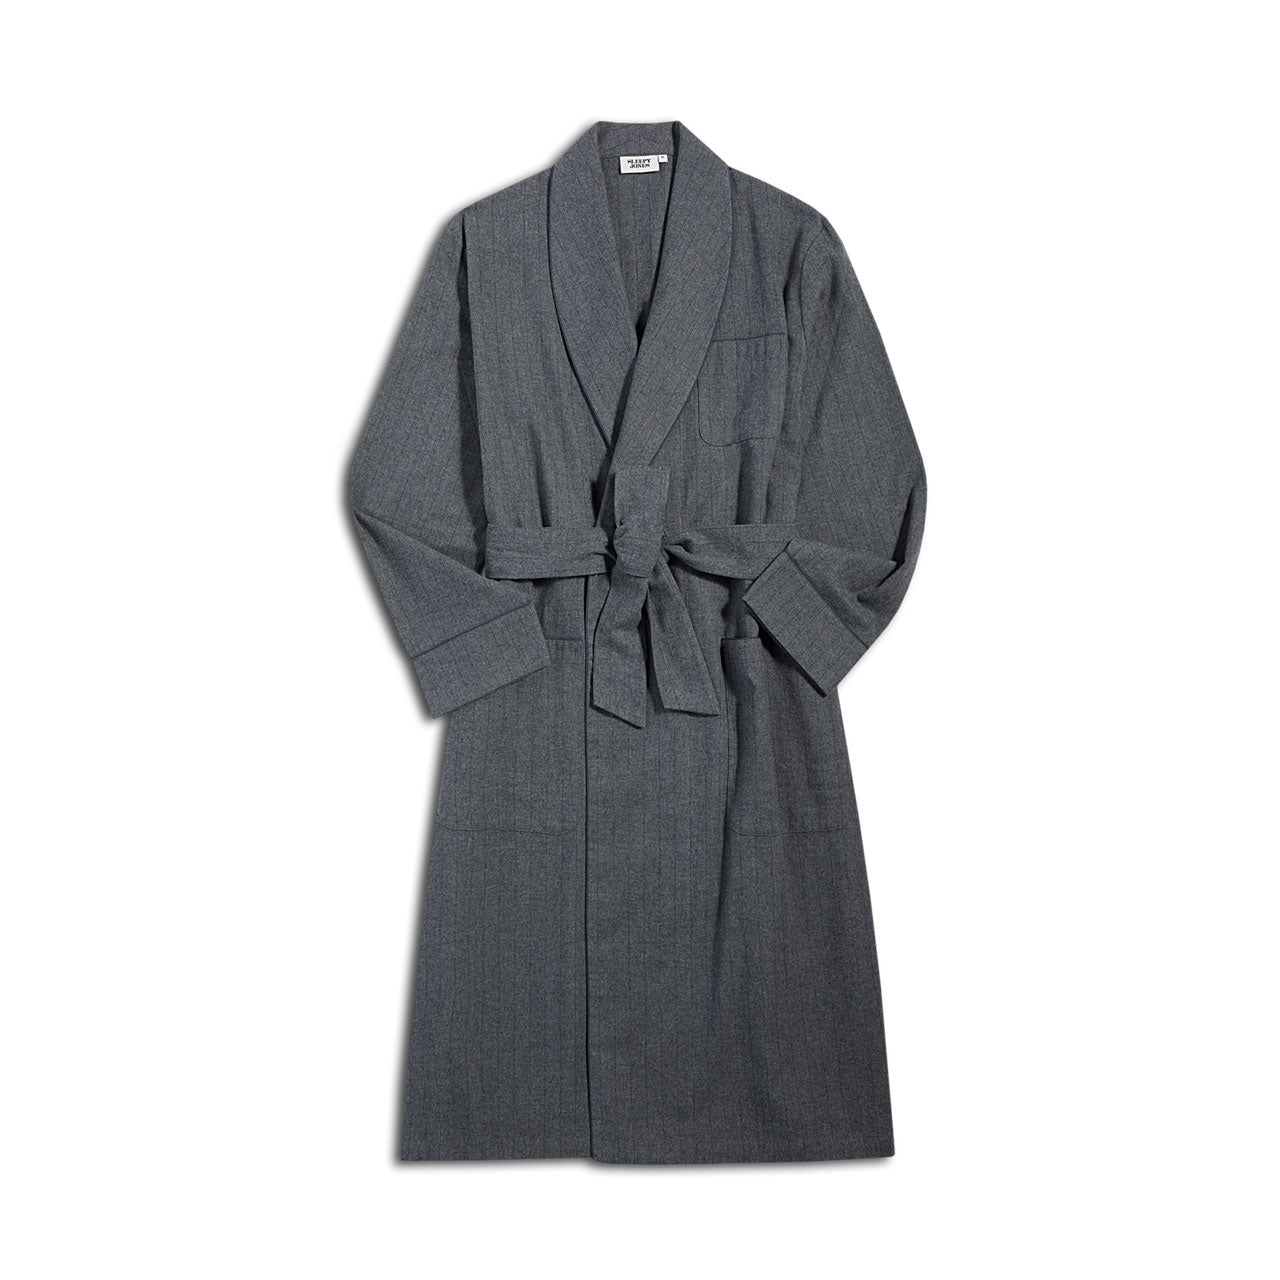 Sleepy Jones Flannel Pinstripe Robe